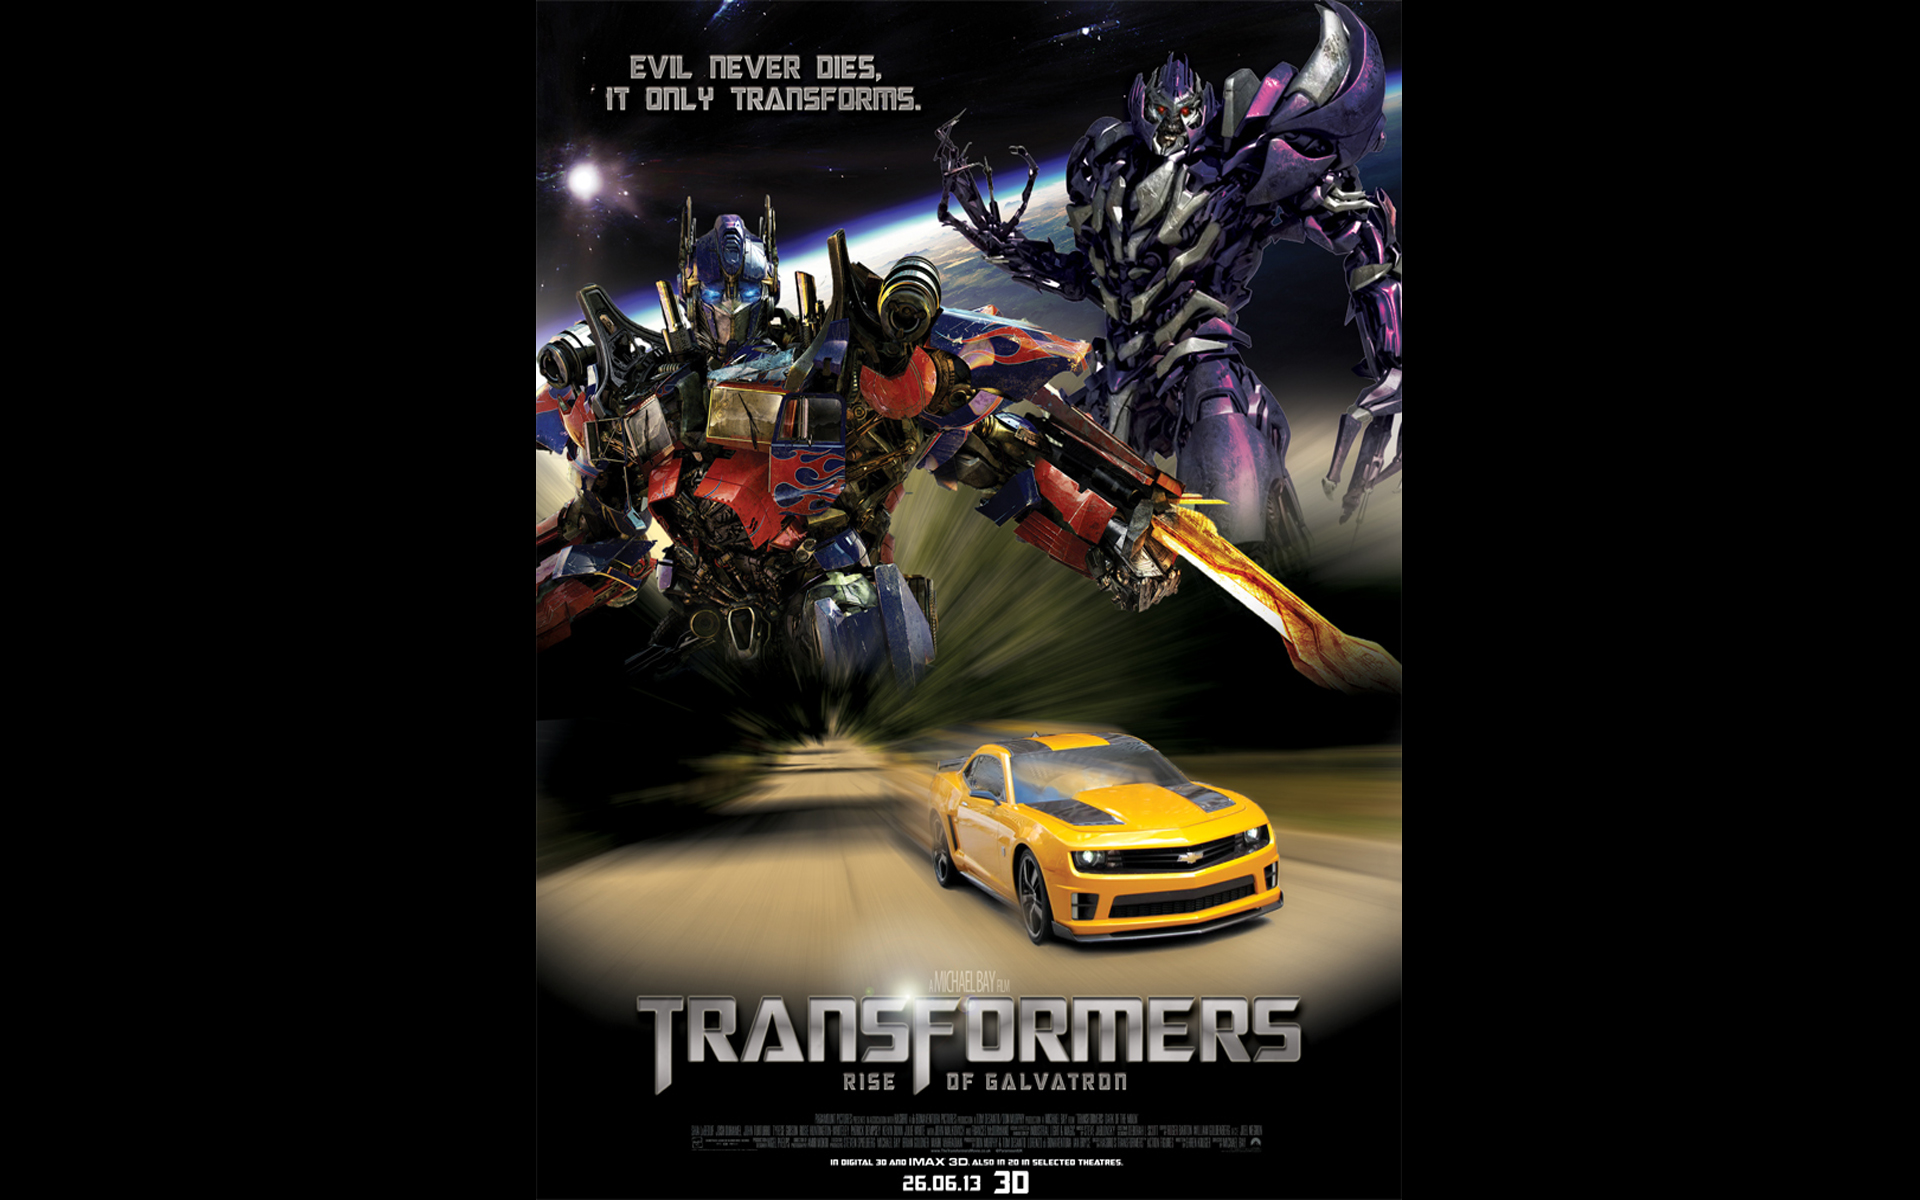 transformers 4 images transformers 4 wallpaper hd wallpaper and